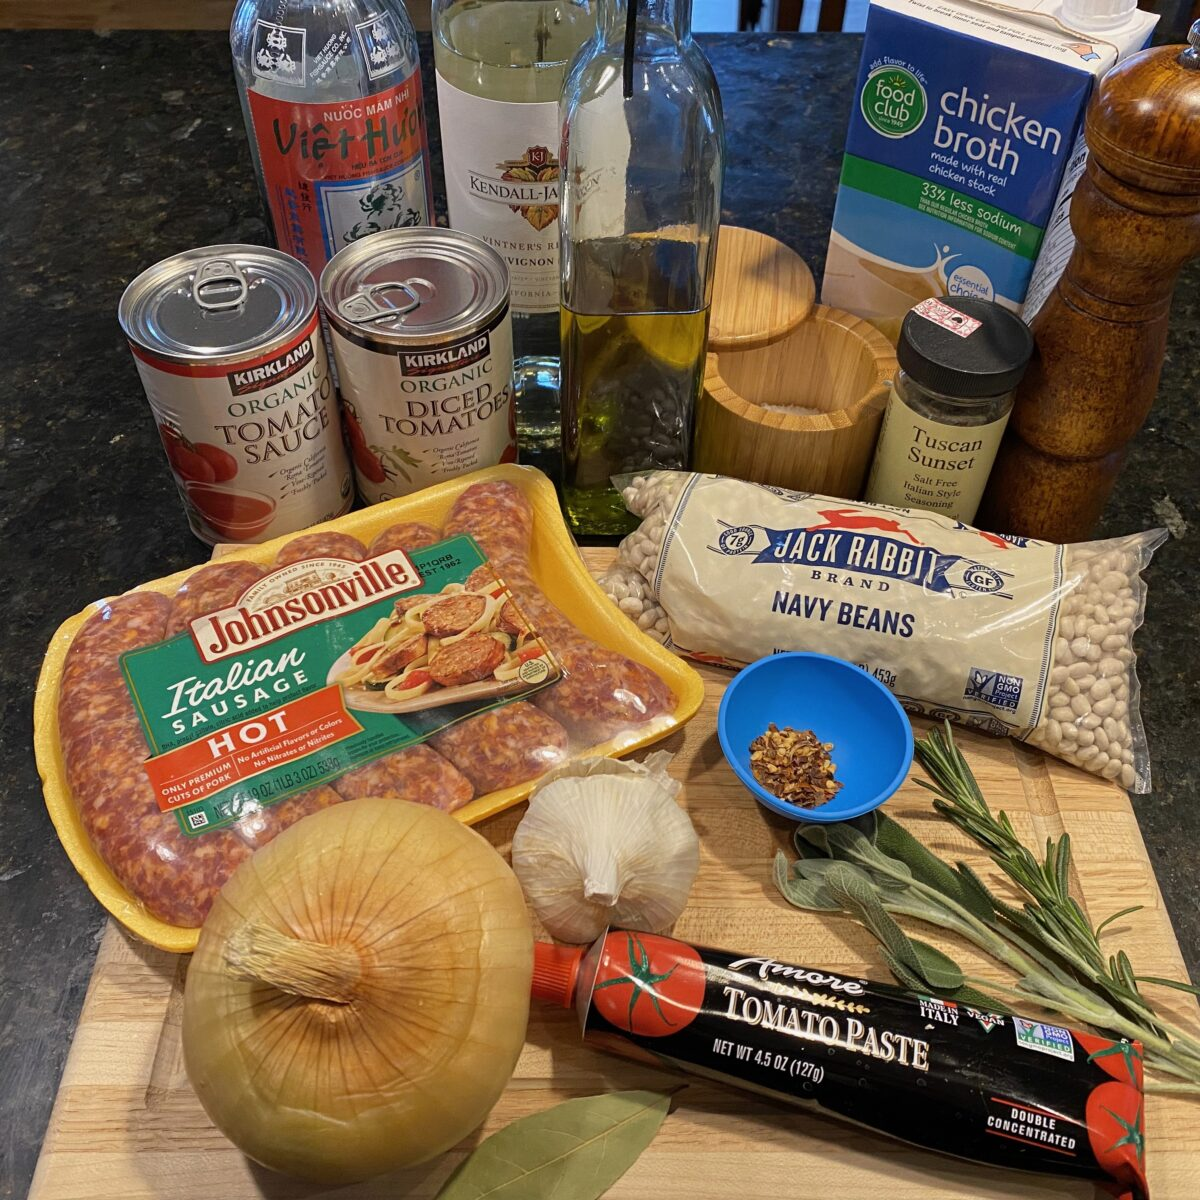 Ingredients for Italian Sausage and Beans: tomato sauce, diced tomatoes, fish sauce, white wine, olive oil, salt, chicken broth, dried Italian herbs, black pepper, navy beans, rosemary, sage, red pepper flakes, tomato paste, garlic, bay leaf, yellow onion, and Italian sausages.